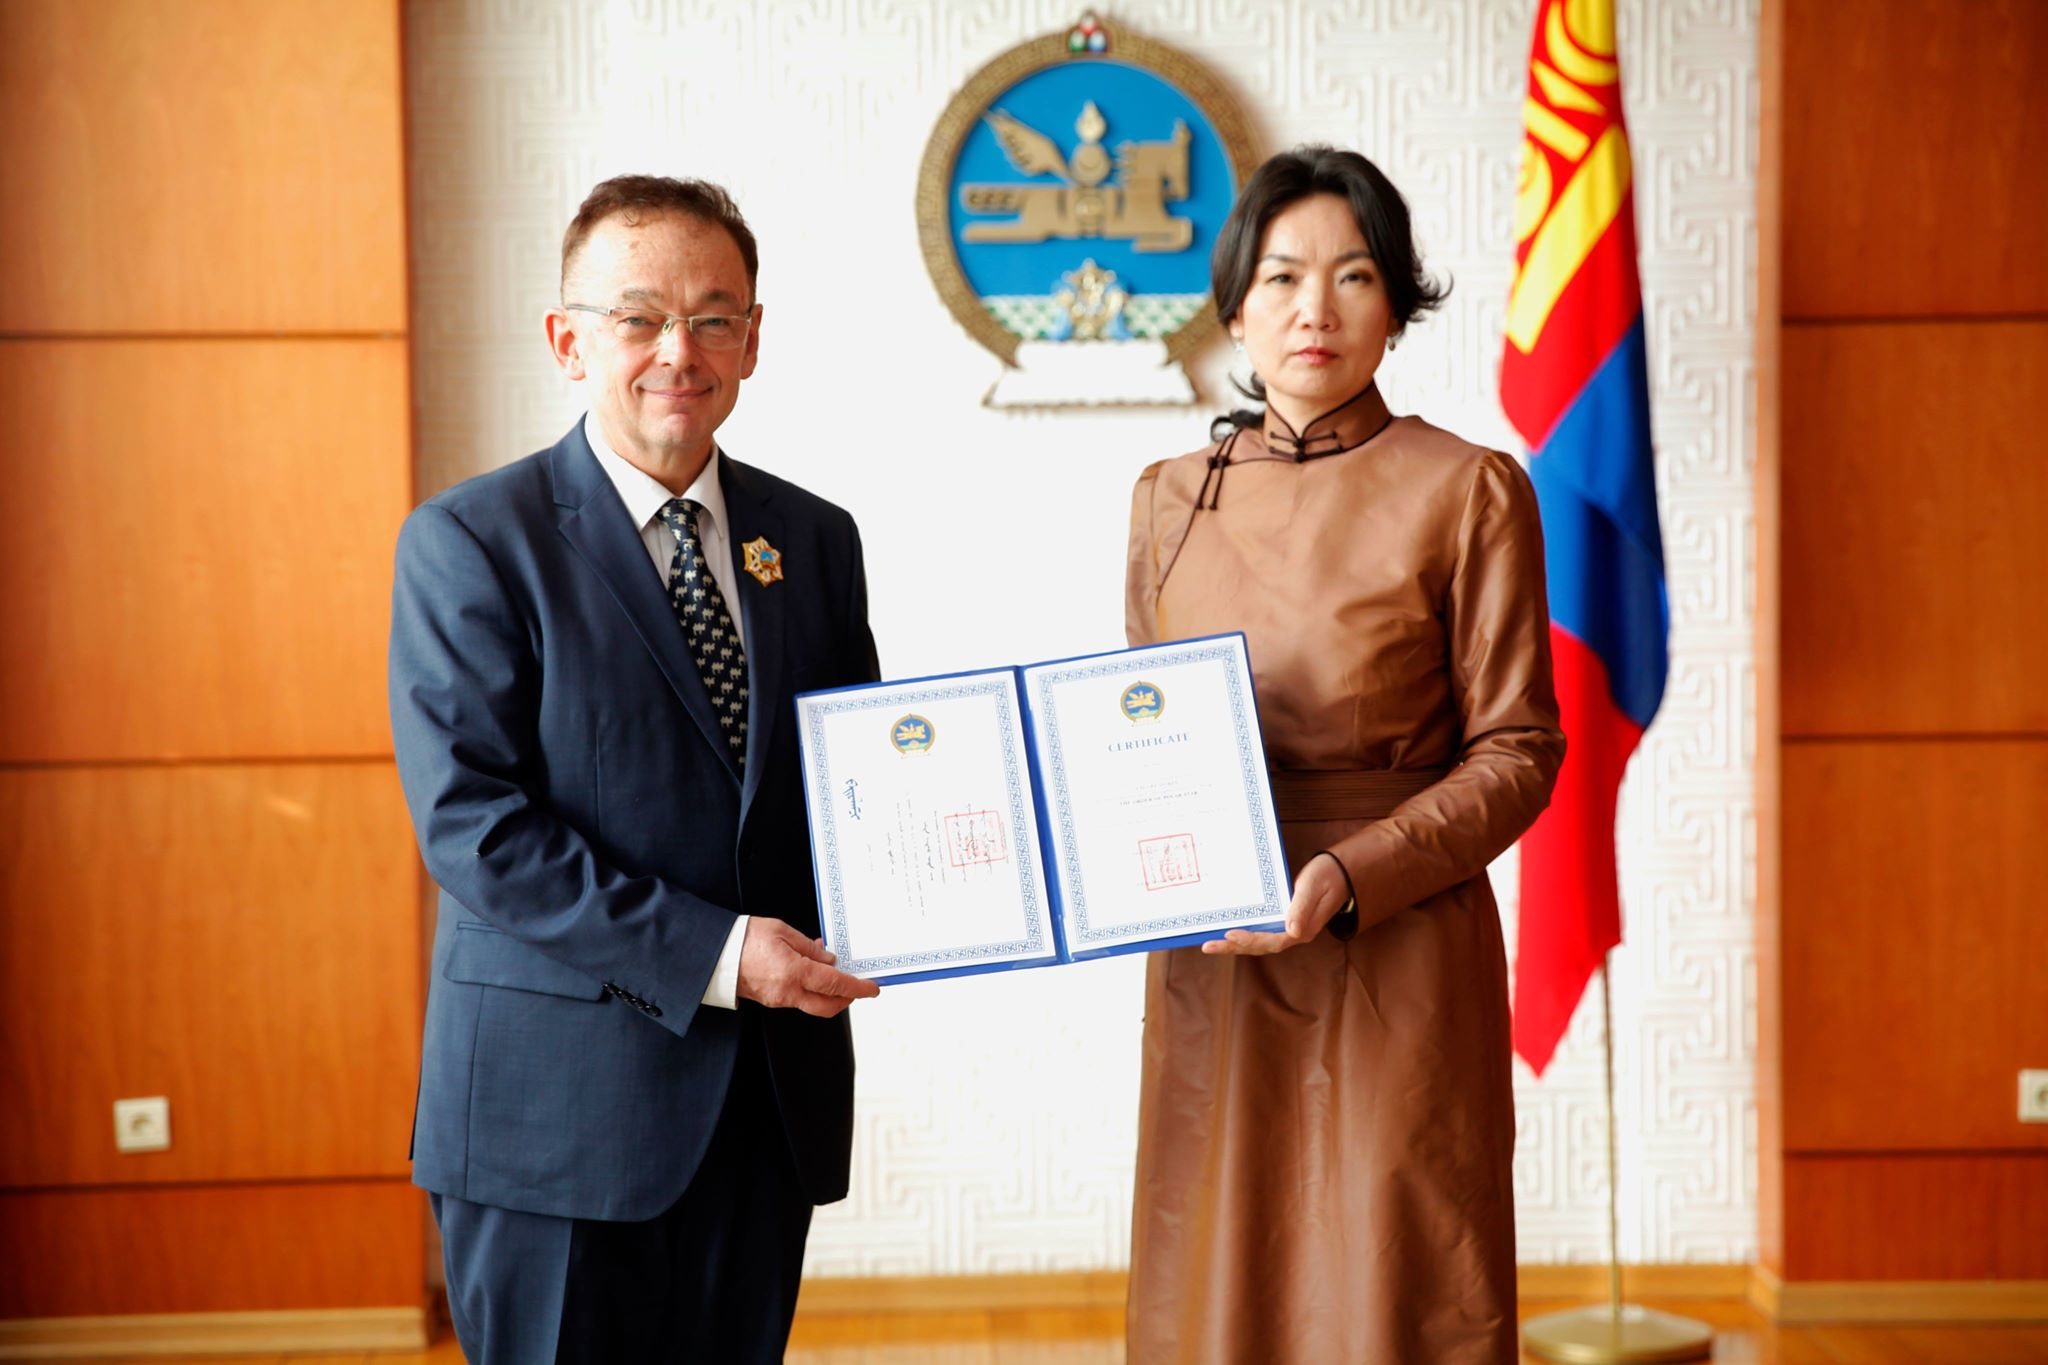 POLAR STAR ORDER CONFERRED UPON CONSUL AND COUNSELLOR OF THE